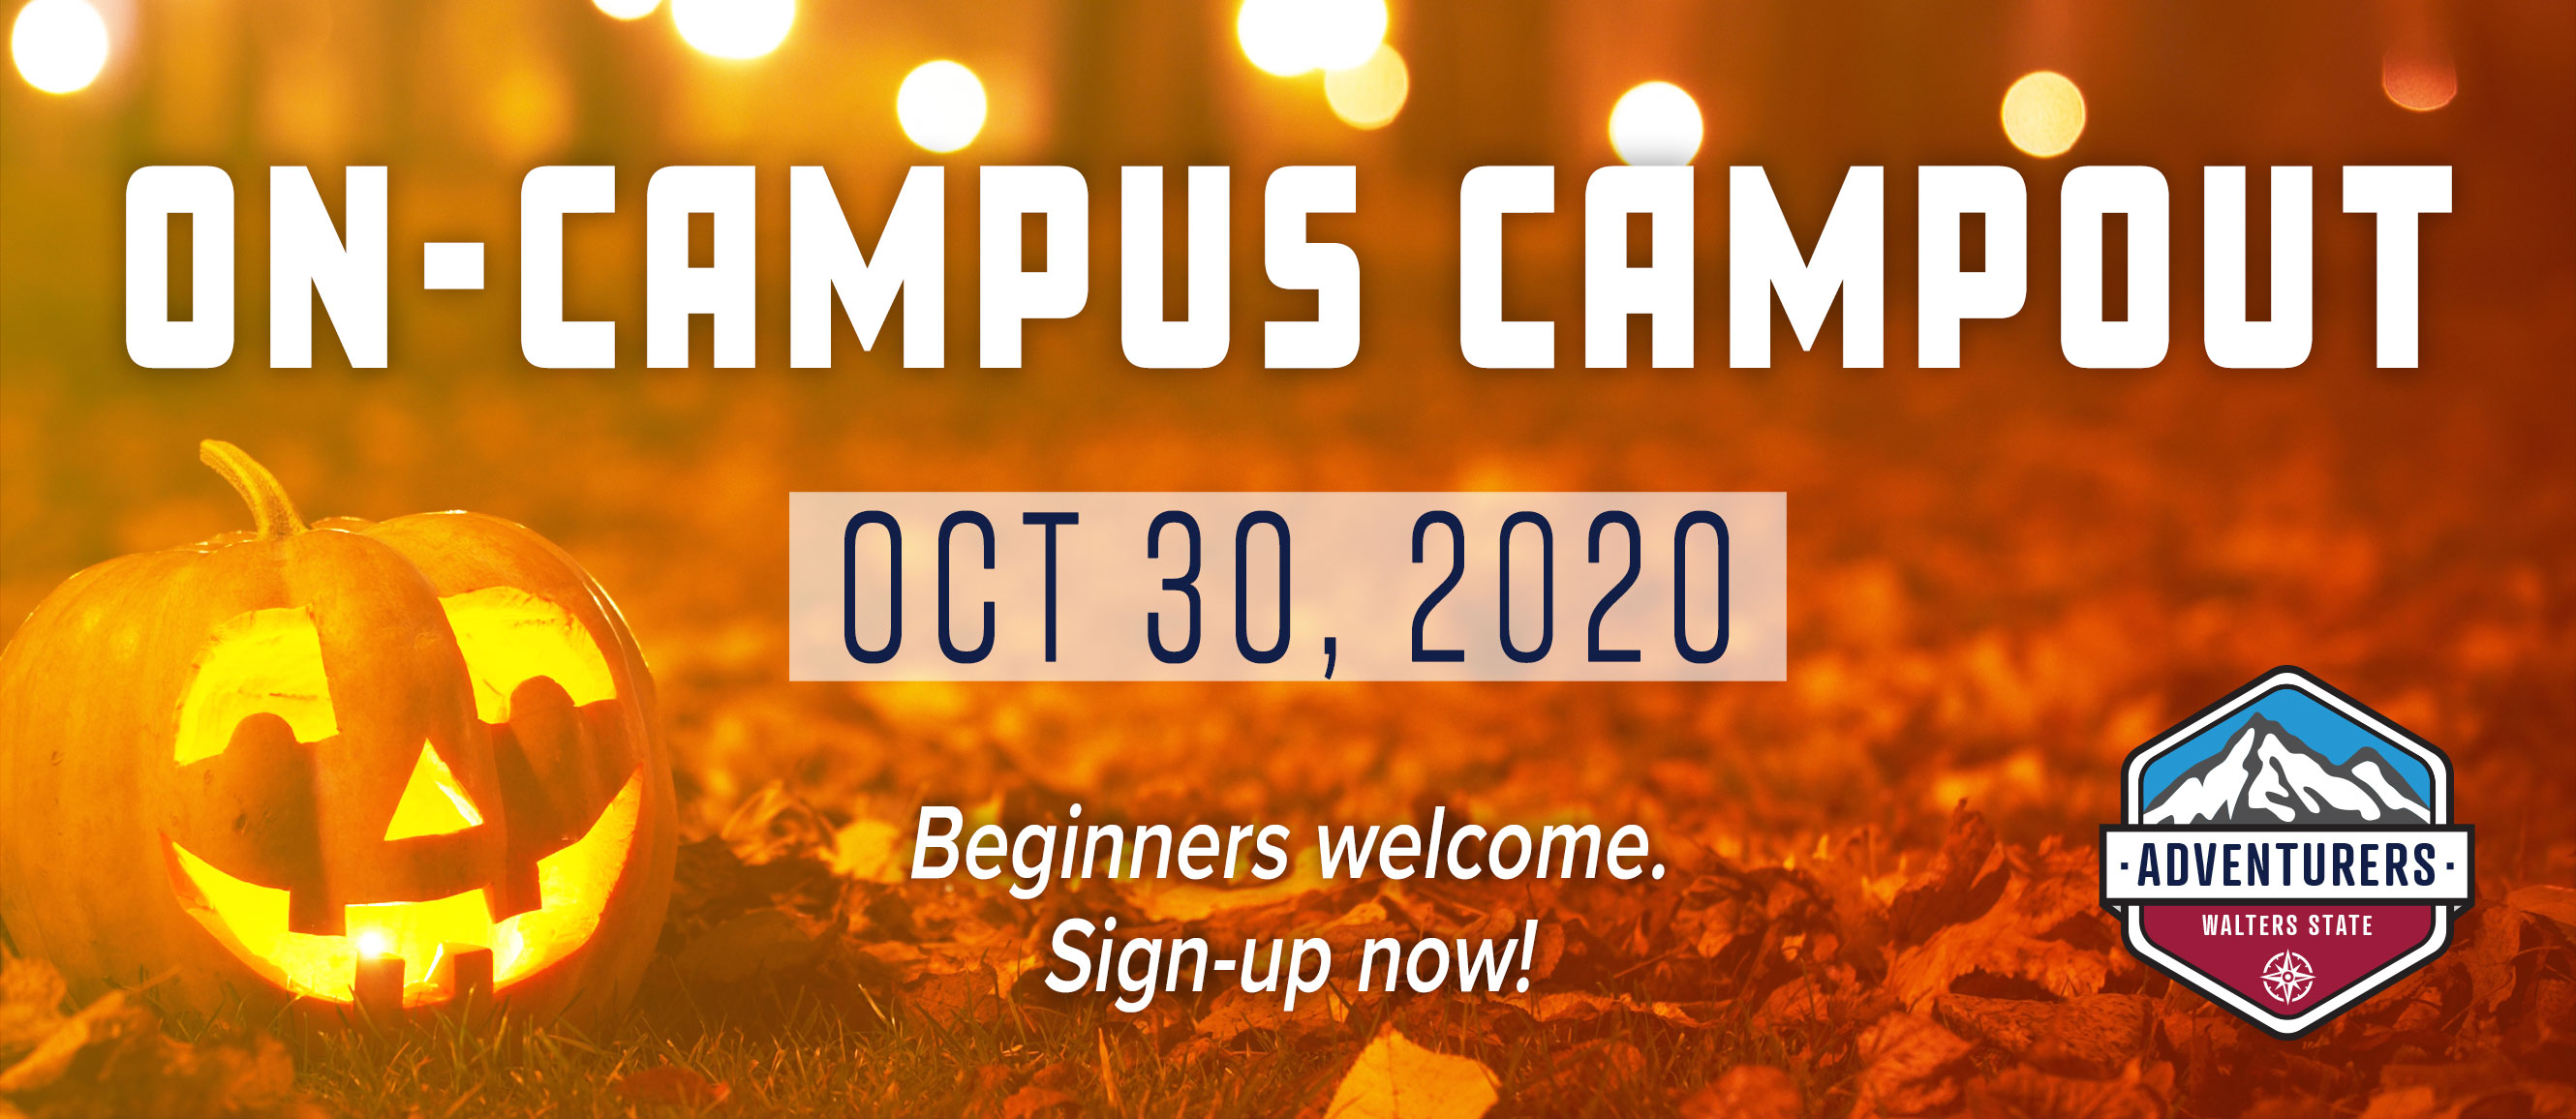 On-Campus Campout Oct 30, 2020. Beginners Welcome. Sign-Up Now!